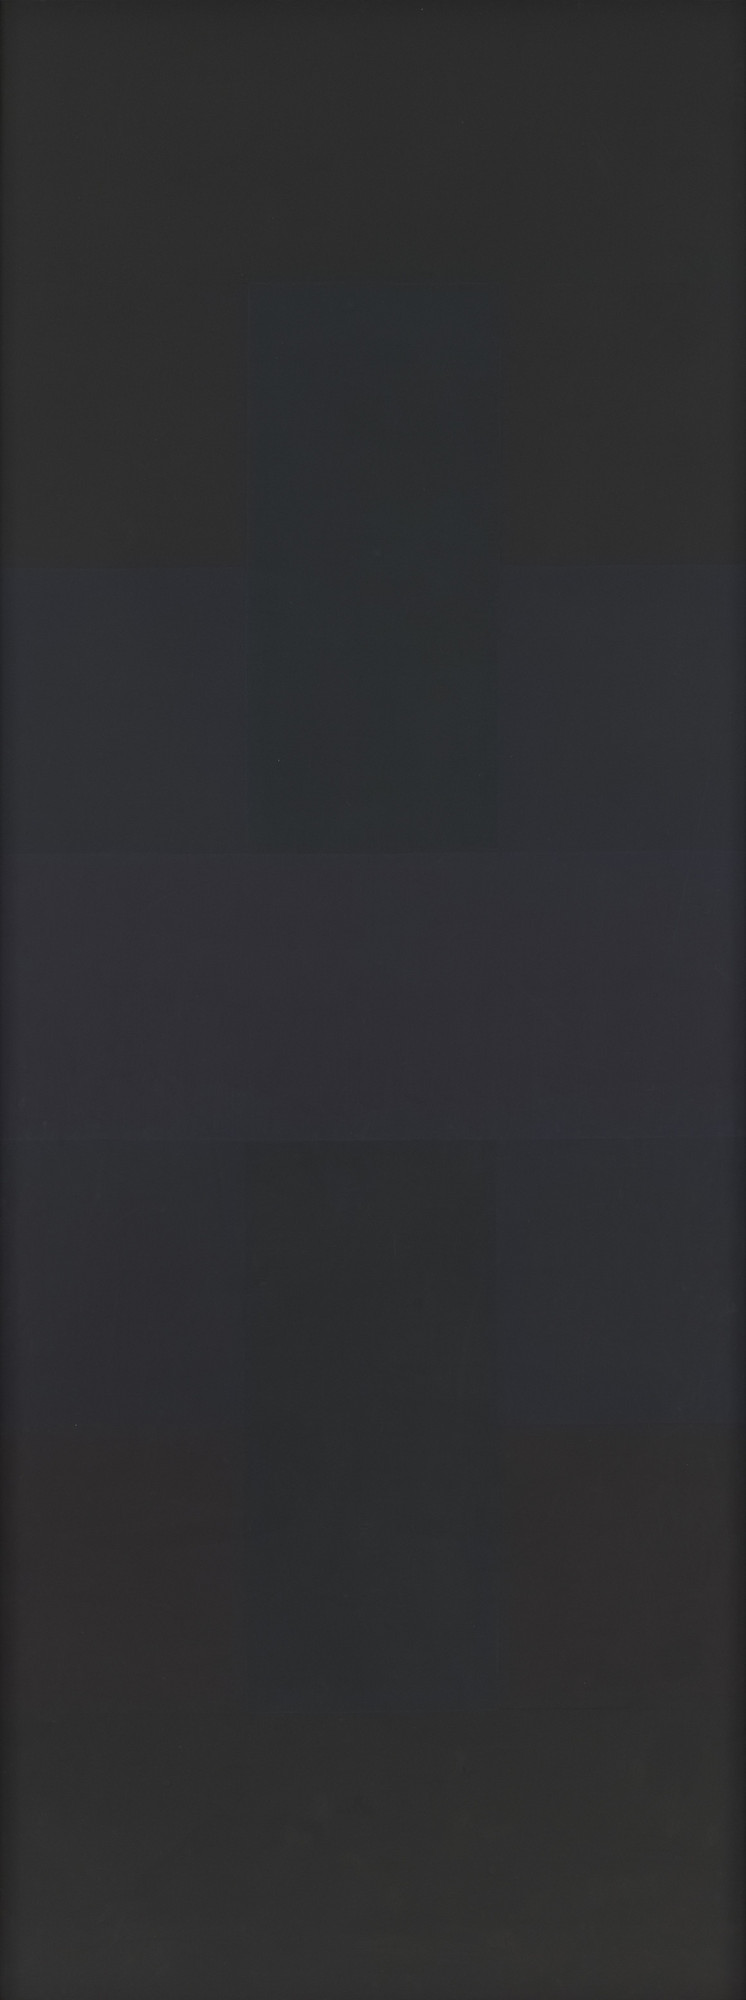 Ad Reinhardt. Abstract Painting. 1957